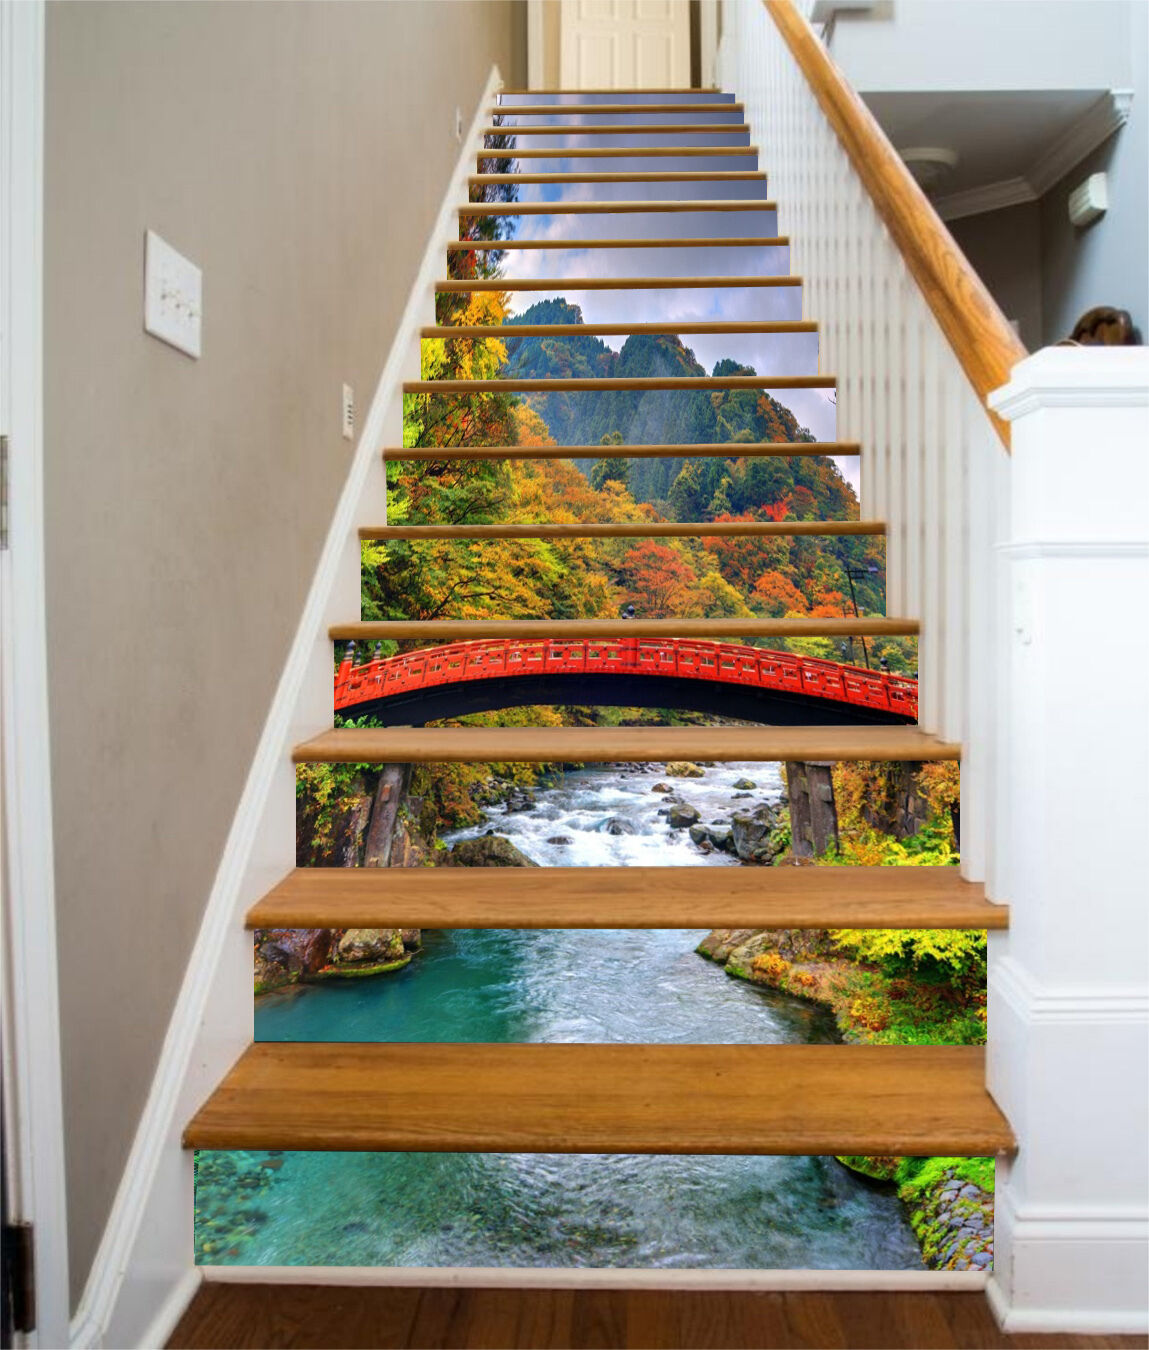 3D Mountains 365 Stair Risers Decoration Photo Mural Vinyl Decal Wallpaper UK